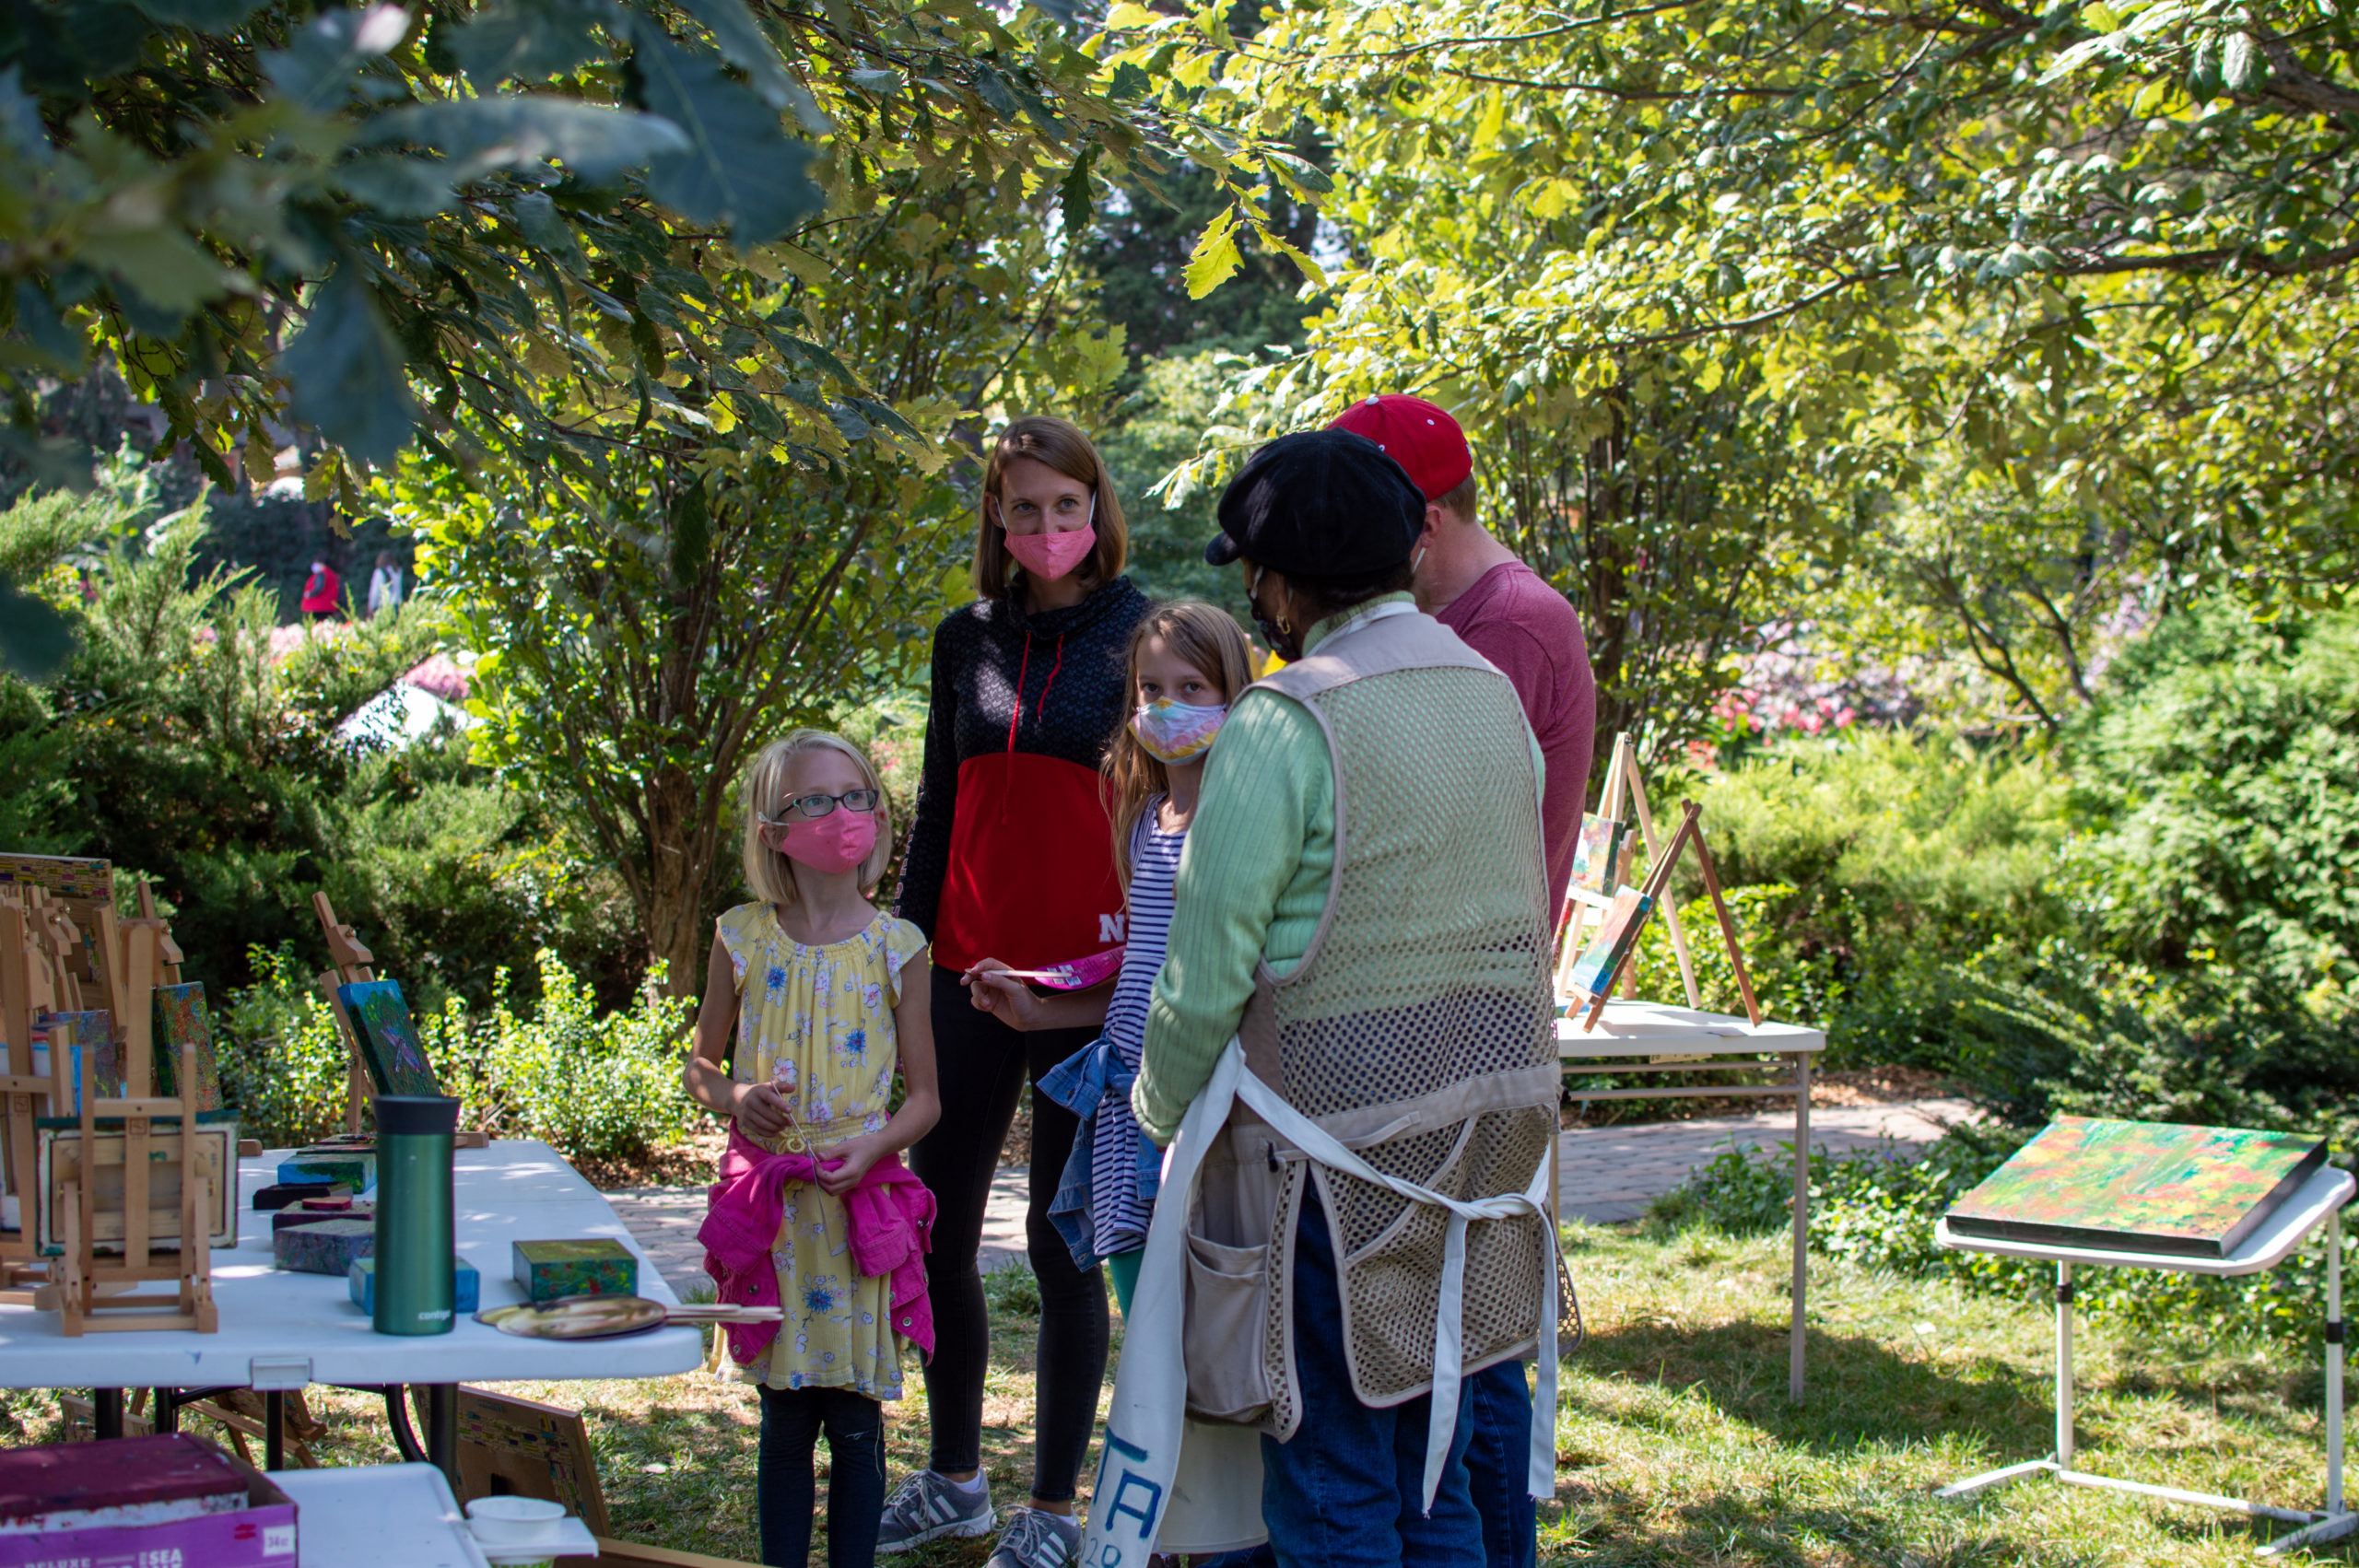 Artists discuss their artwork with event-goers at Art in the Garden held at Sunken Gardens on Saturday, Sept. 12, in Lincoln.